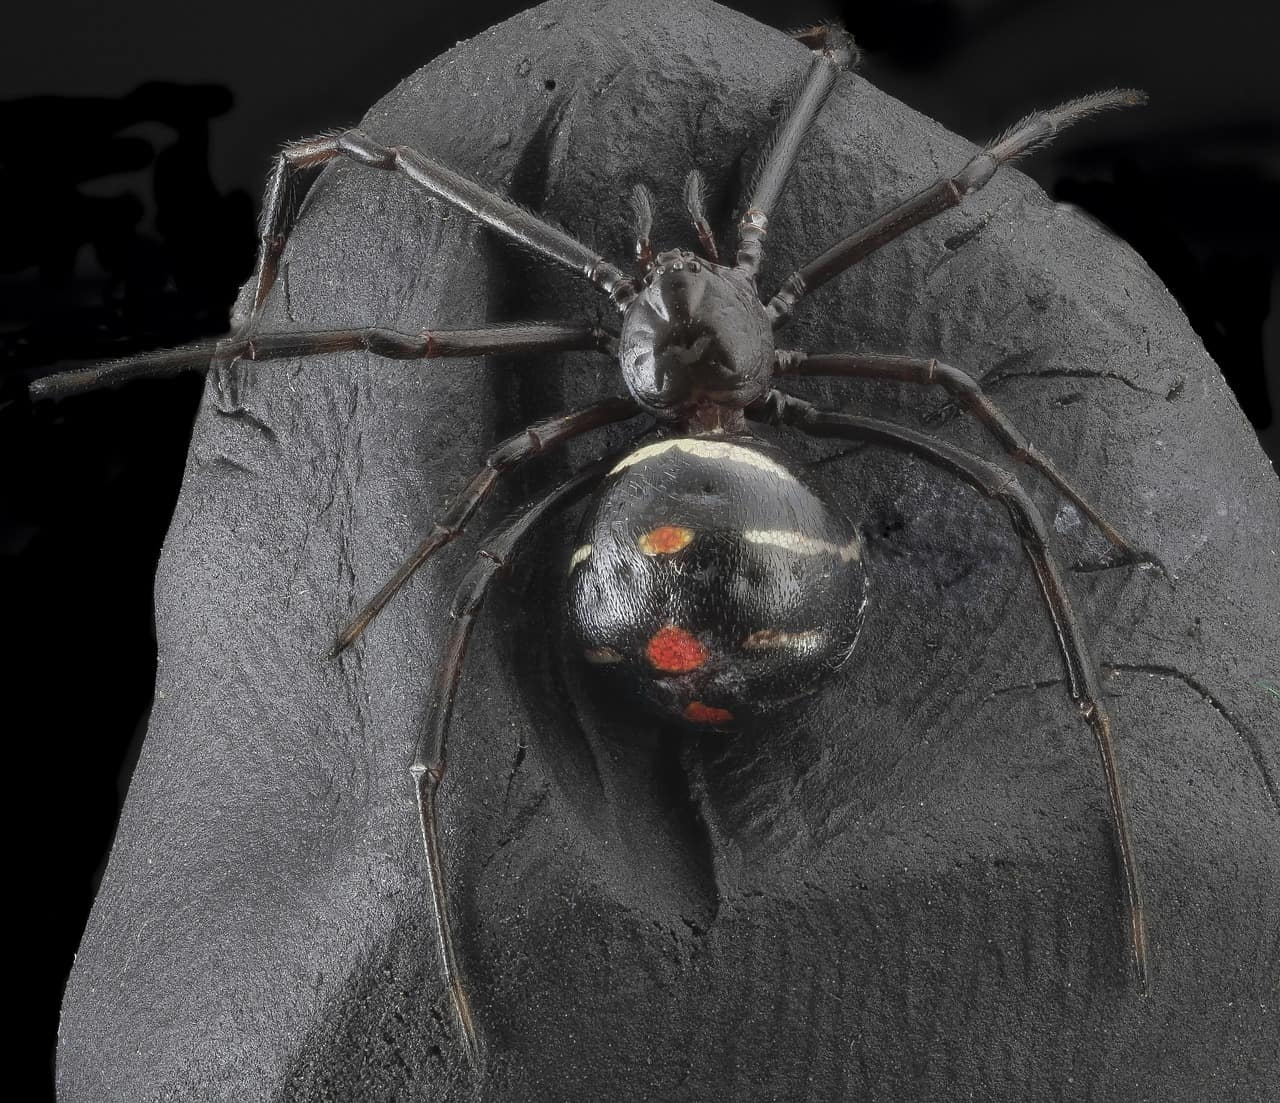 What are some interesting facts about Black Widow Spider?